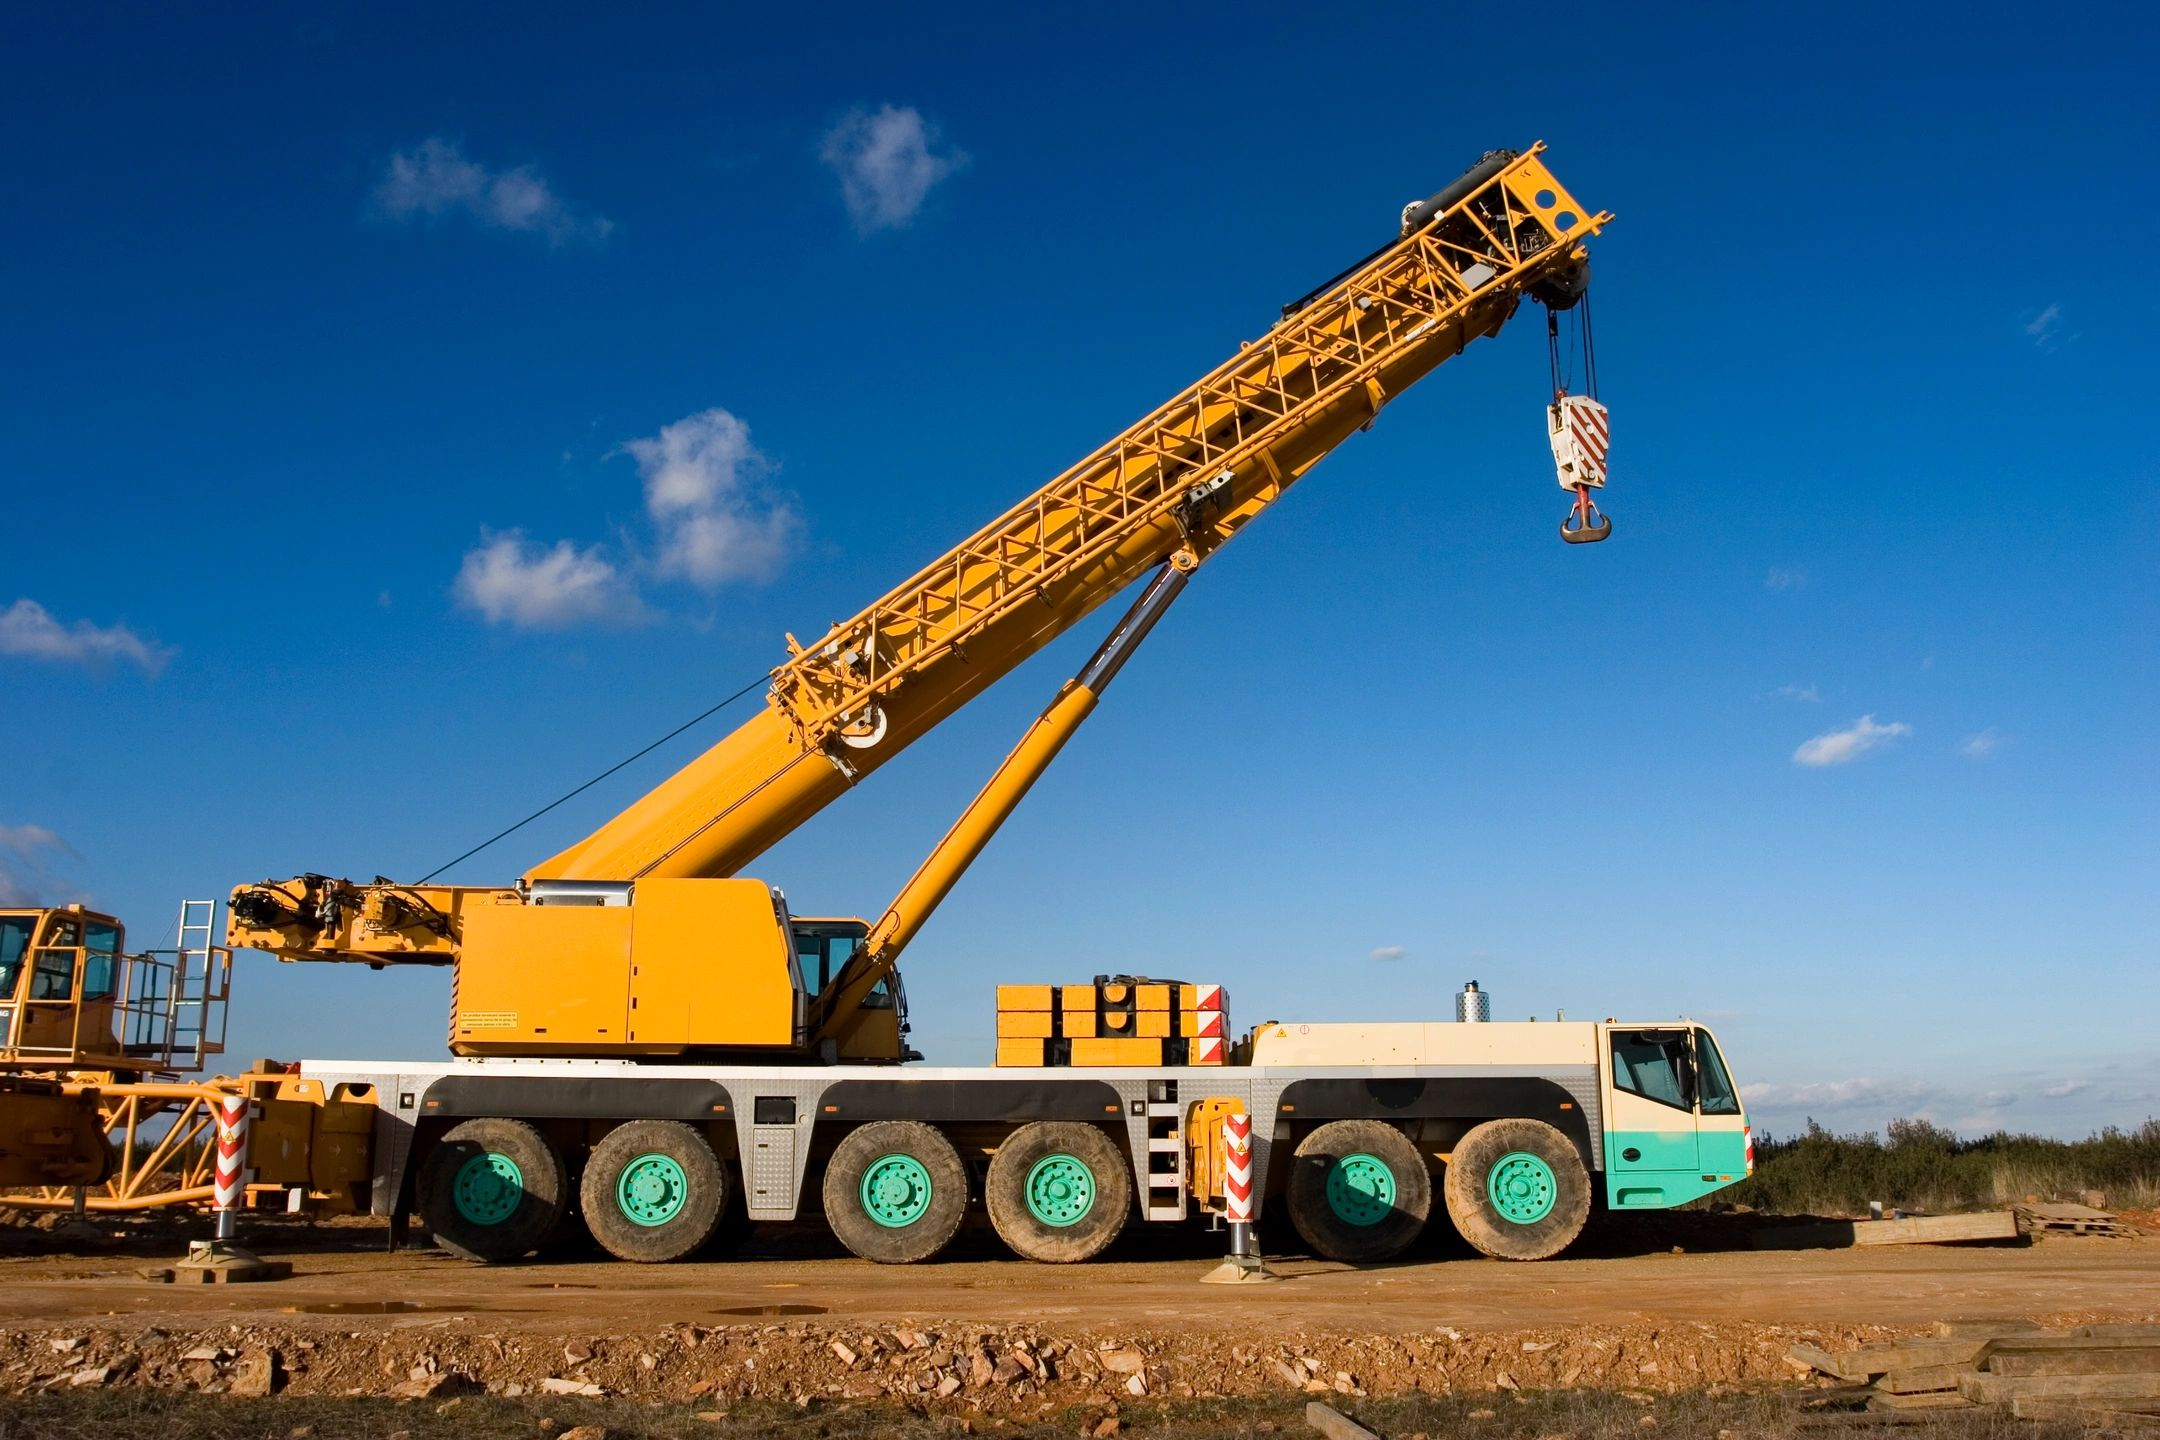 Crane from construction equipment financing